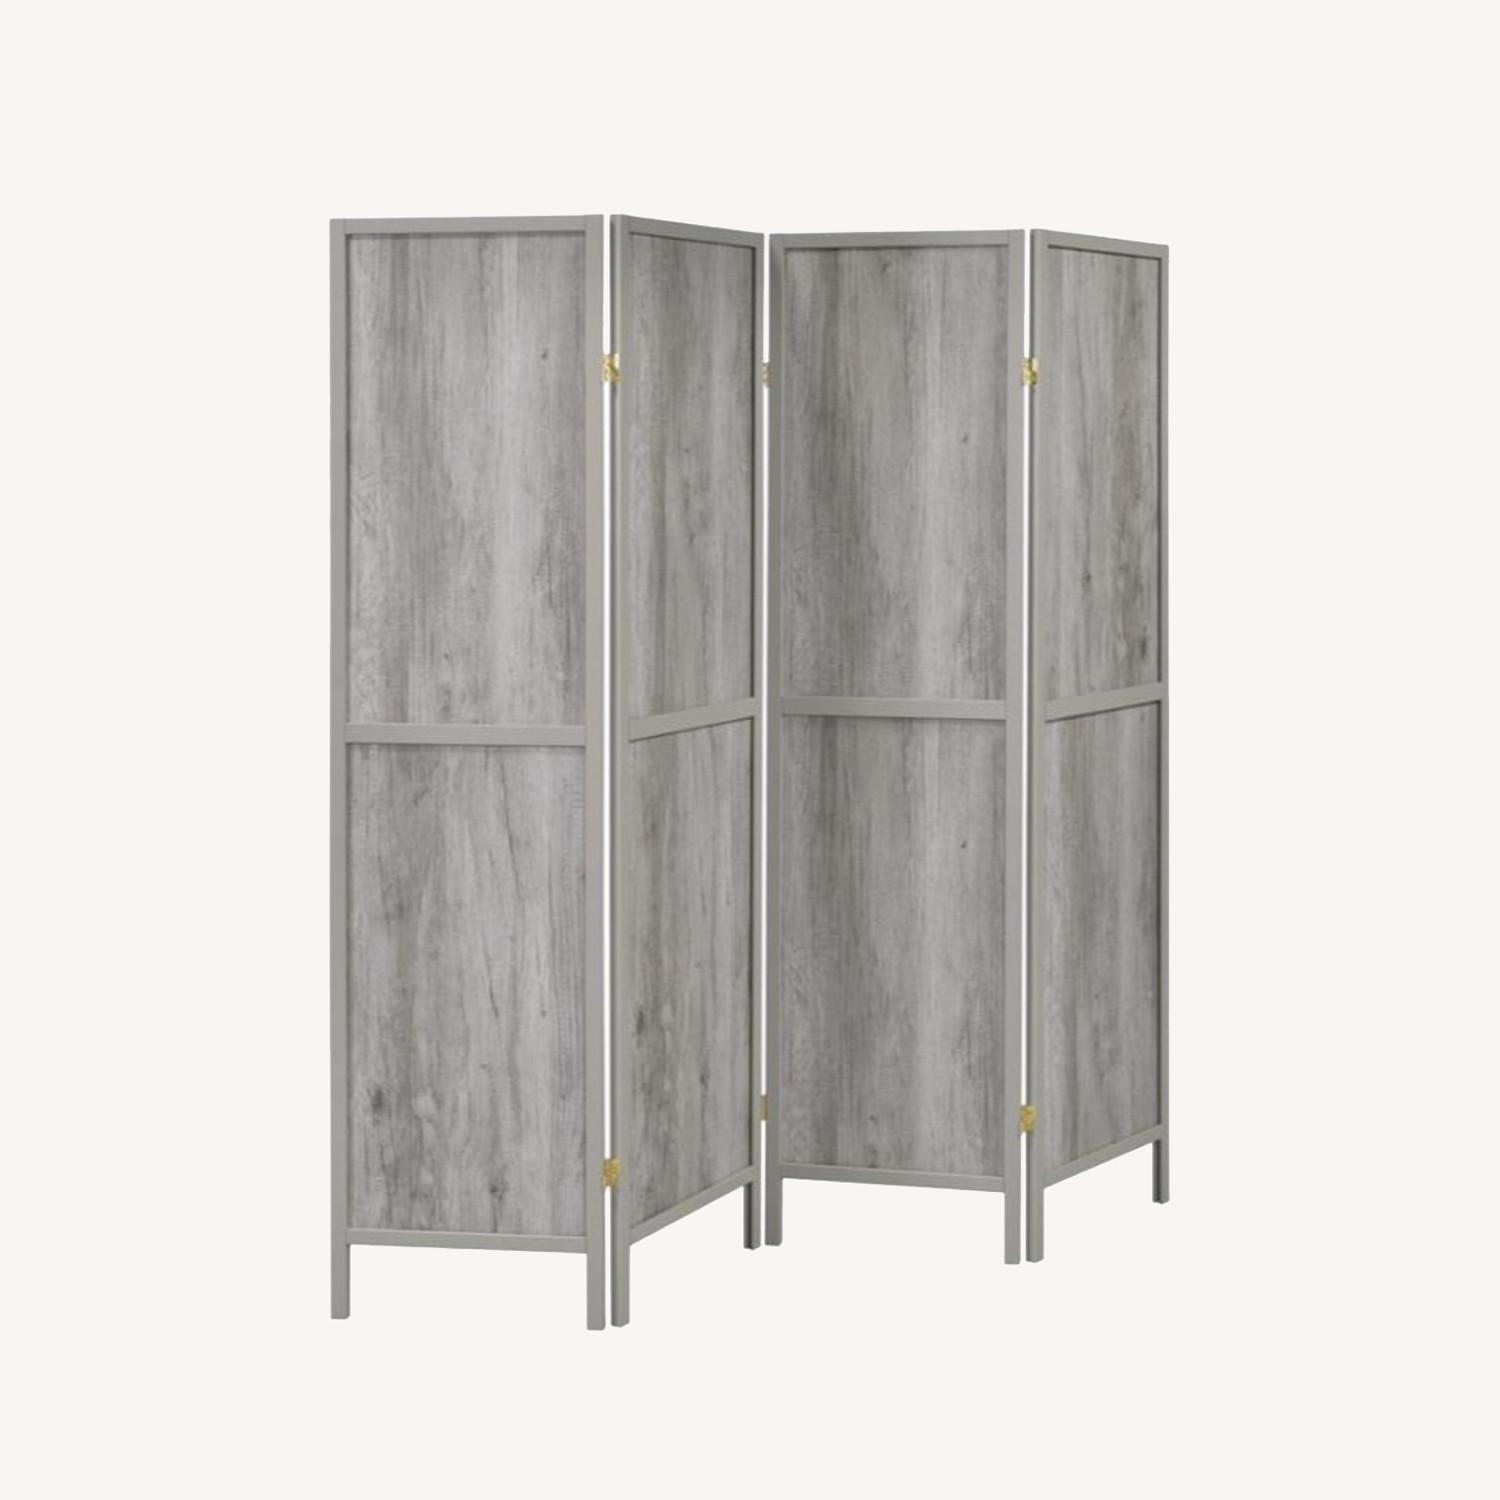 4-Panel Screen In Grey Driftwood & Grey Wood Frame - image-5